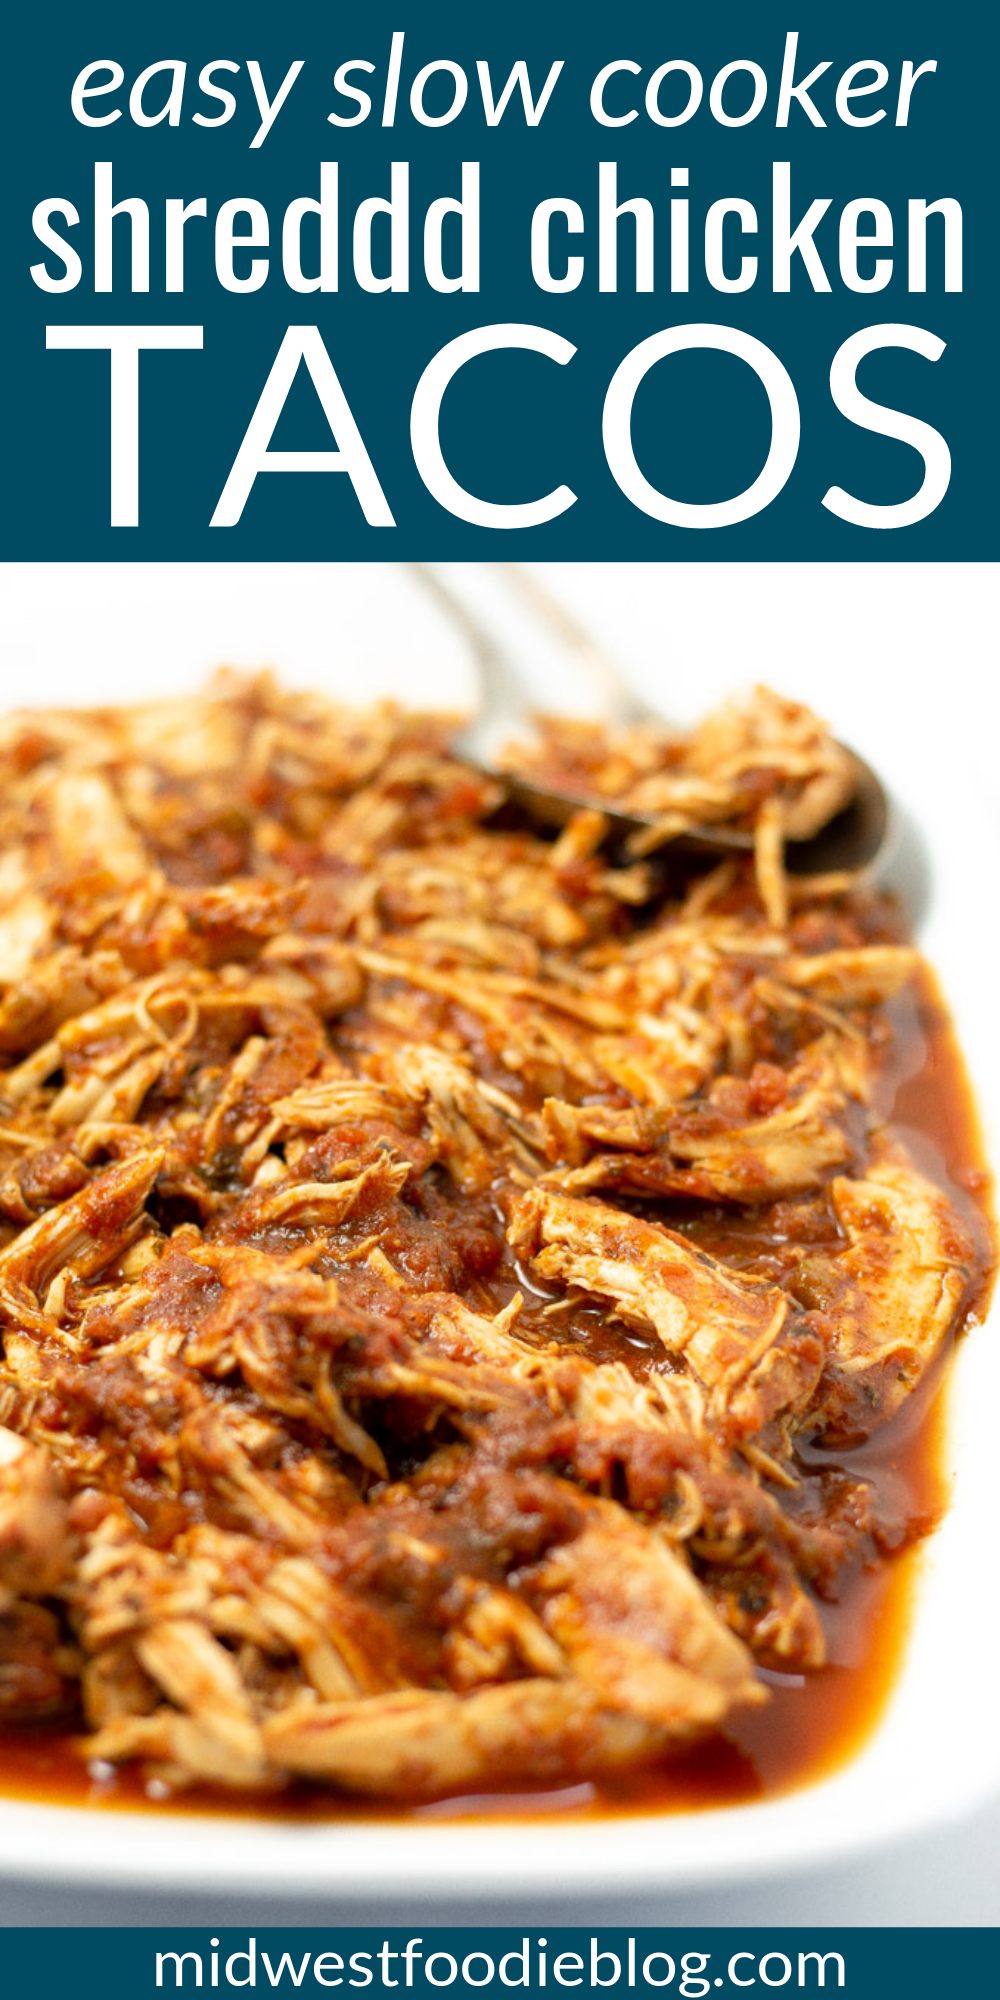 Healthy Slow Cooker Chicken Tacos | Midwest Foodie